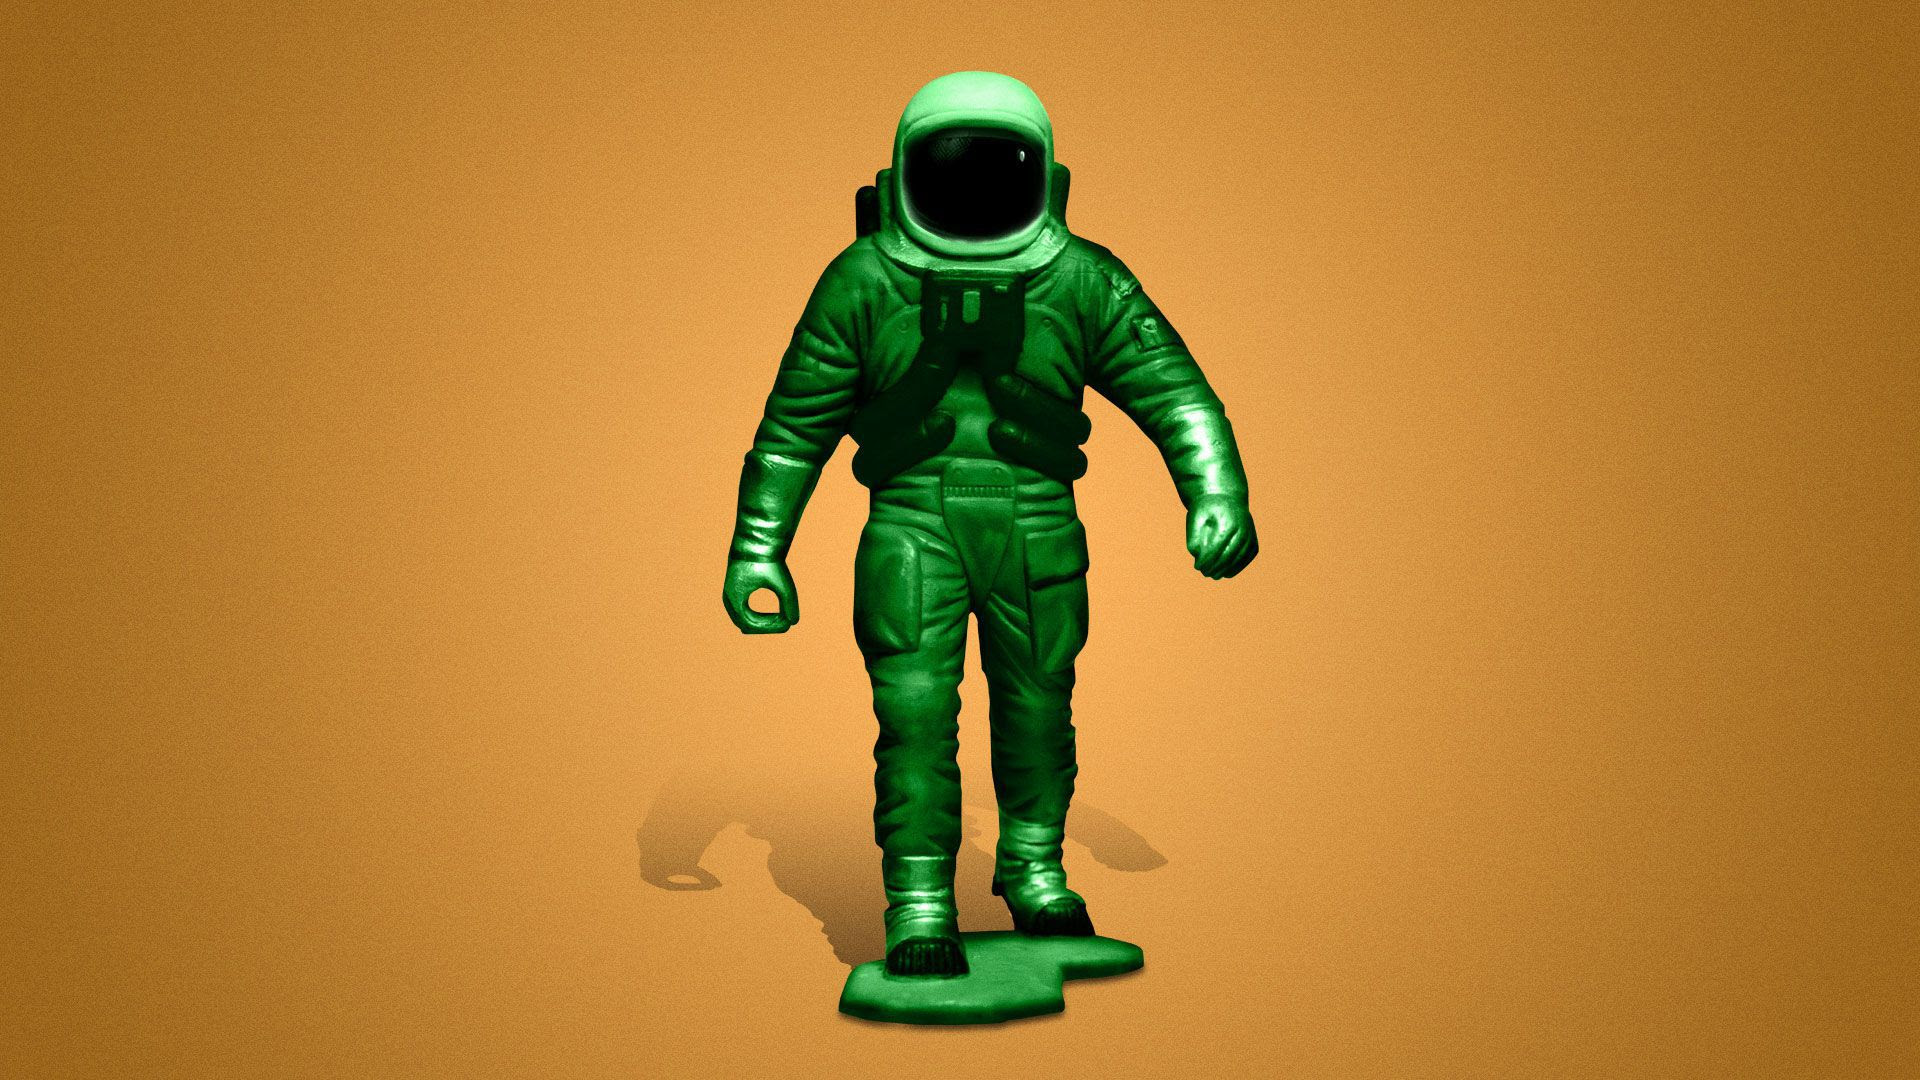 Illustration of an astronaut as a plastic army toy